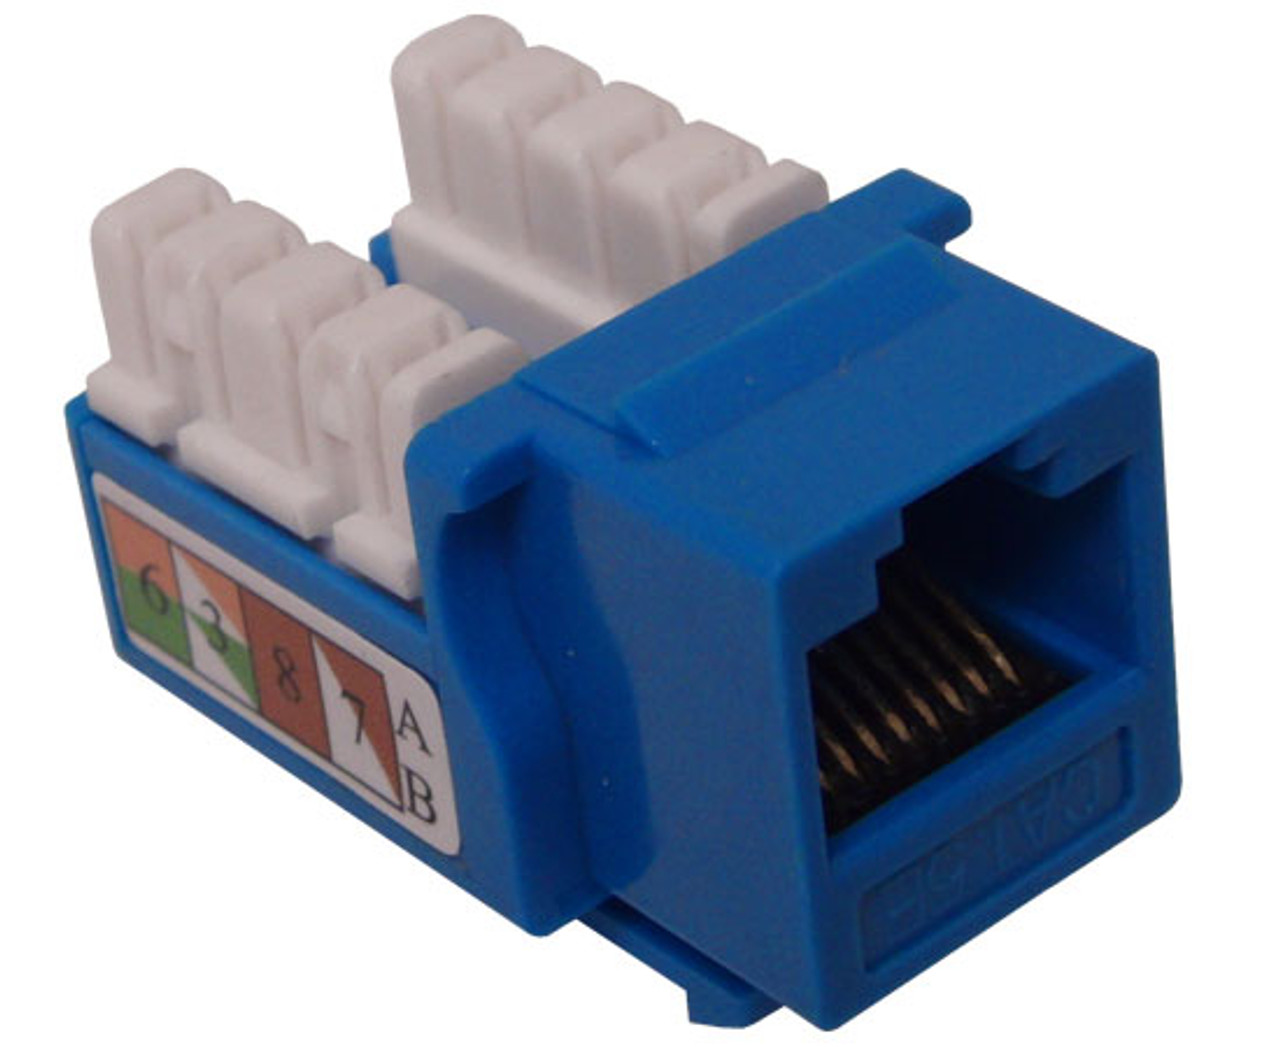 hight resolution of category 6 keystone computer jacks cablesupply blue rj45 computer jack cat6 110 punch down cablesupply